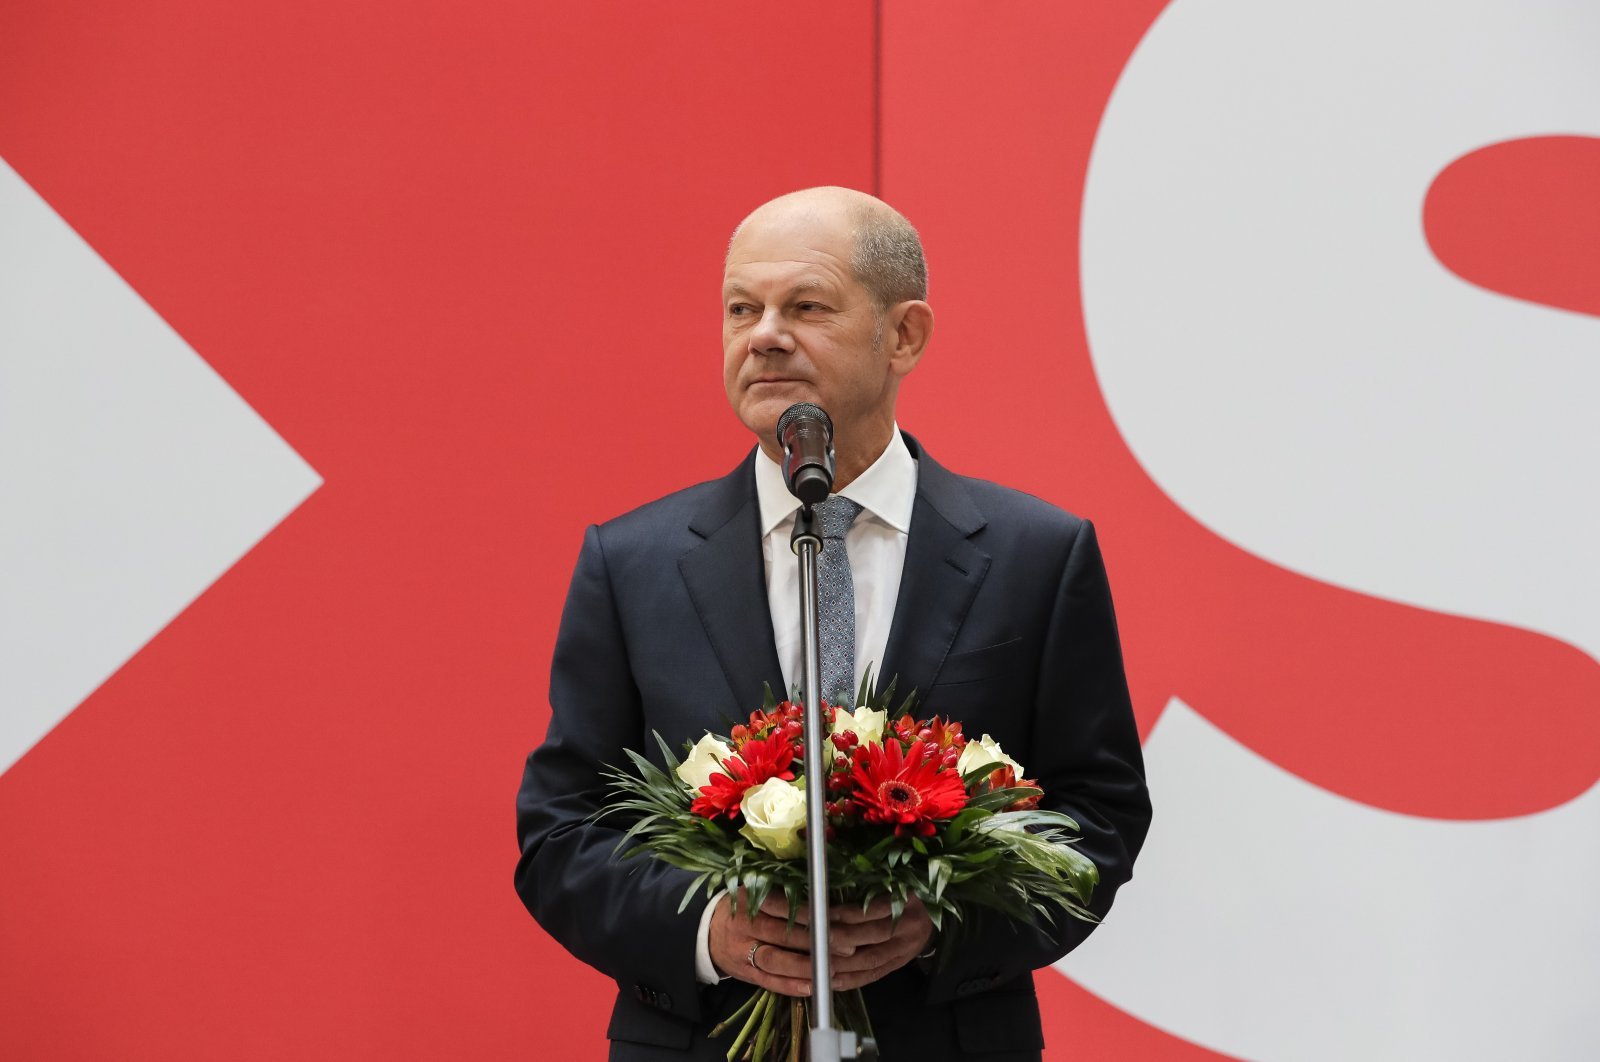 Olaf Scholz, the top candidate for chancellor of the Social Democratic Party (SPD), holds a bunch of flowers during a press statement at the party's headquarters in Berlin, Germany, Sept. 27, 2021. (AP Photo)